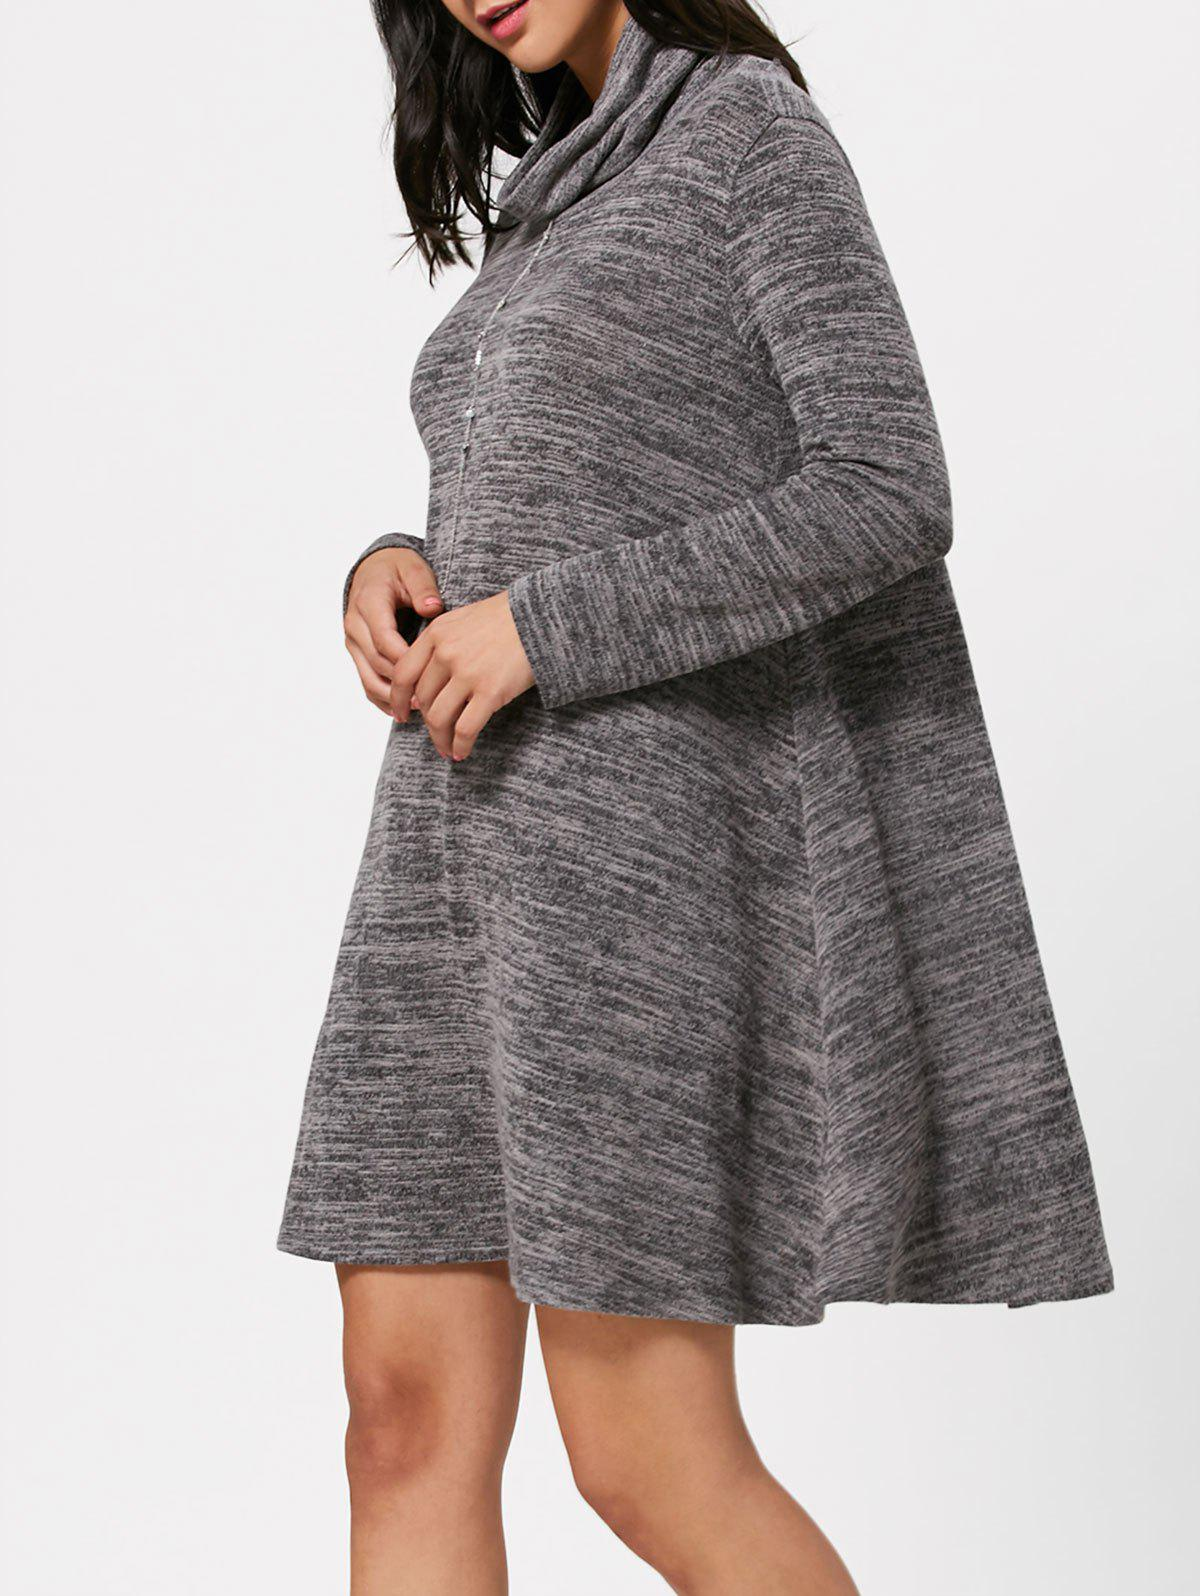 High Neck Long Sleeve Knit Tunic Dress - GRAY L